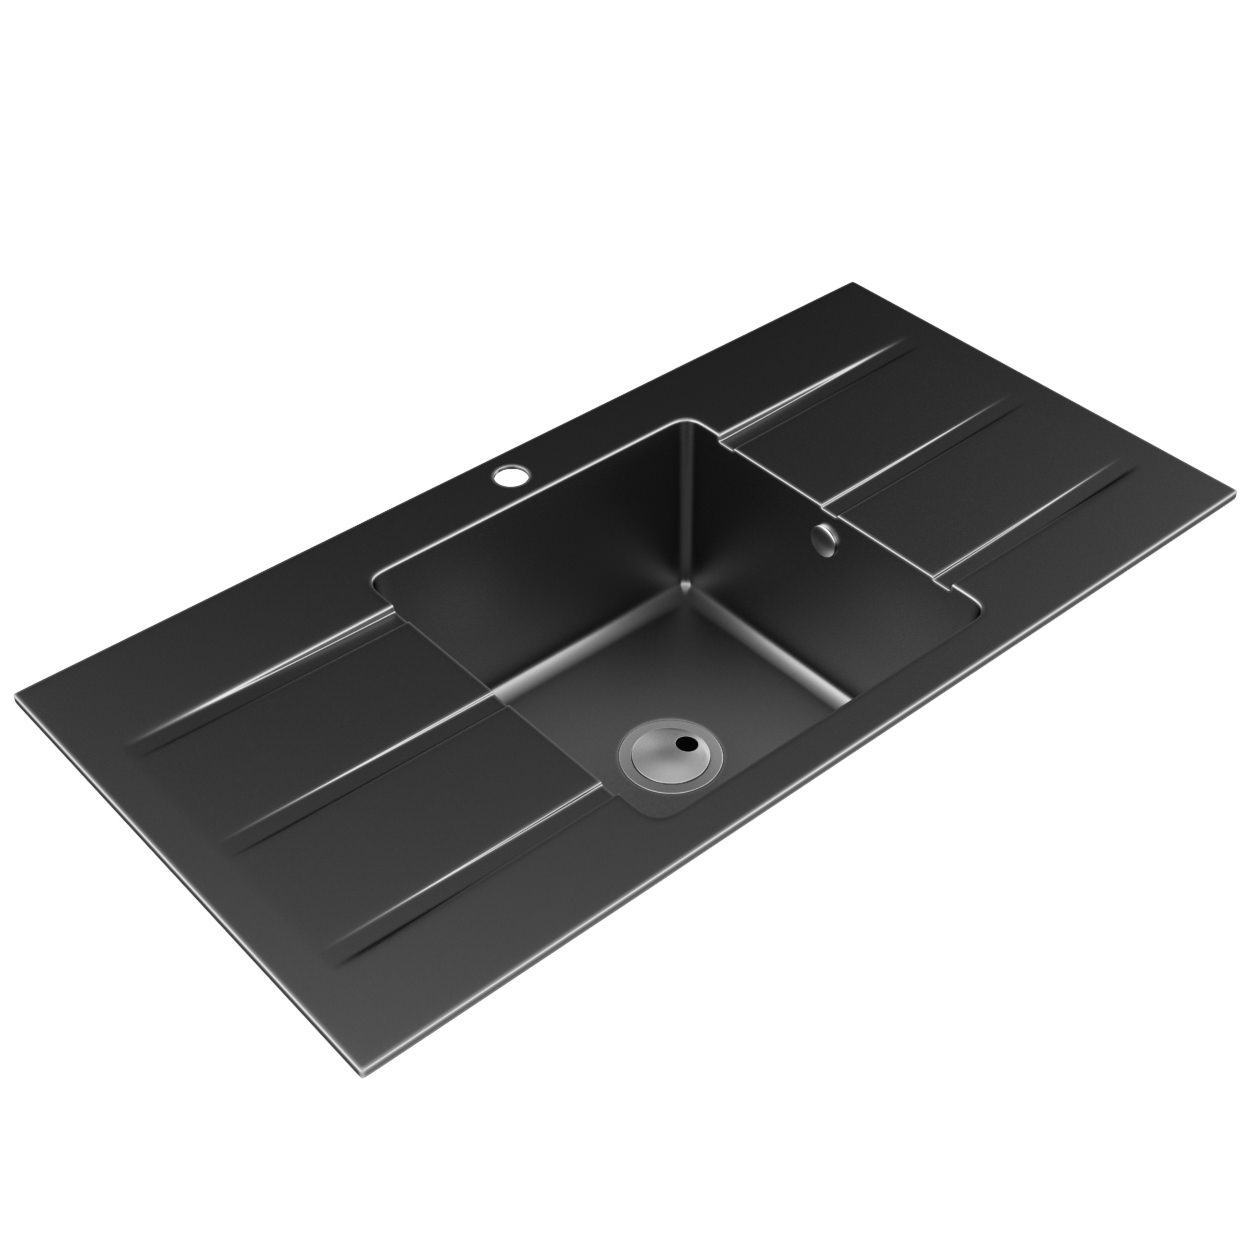 Ceramic Kitchen Sink With Drainer : Abode Zero 1.0 Bowl Ceramic Kitchen Sink With Double Drainer